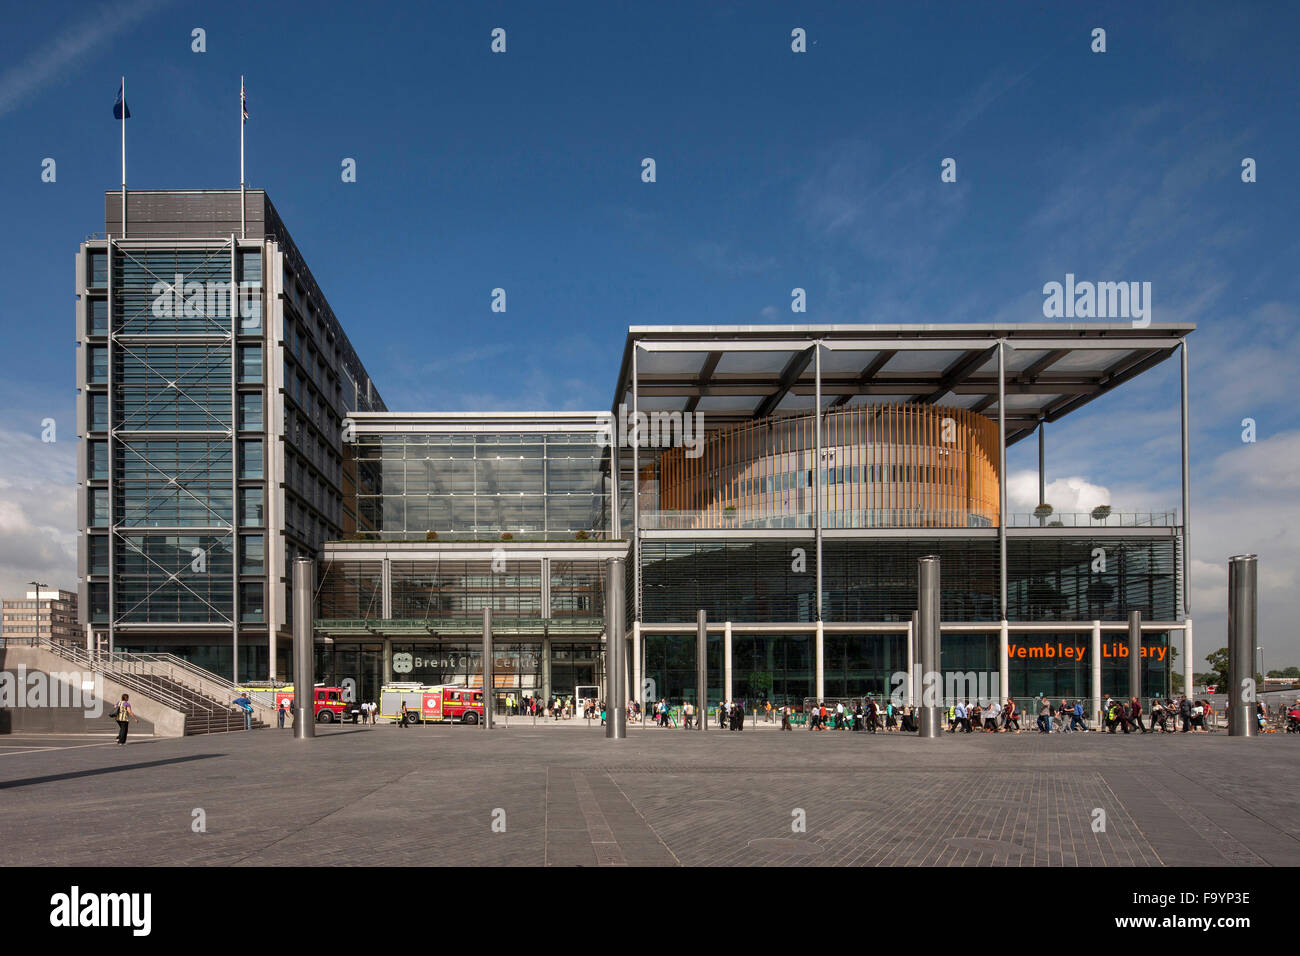 Brent Civic Centre and Wembley Library, London. An energy efficient modern civic space. Exterior view. - Stock Image